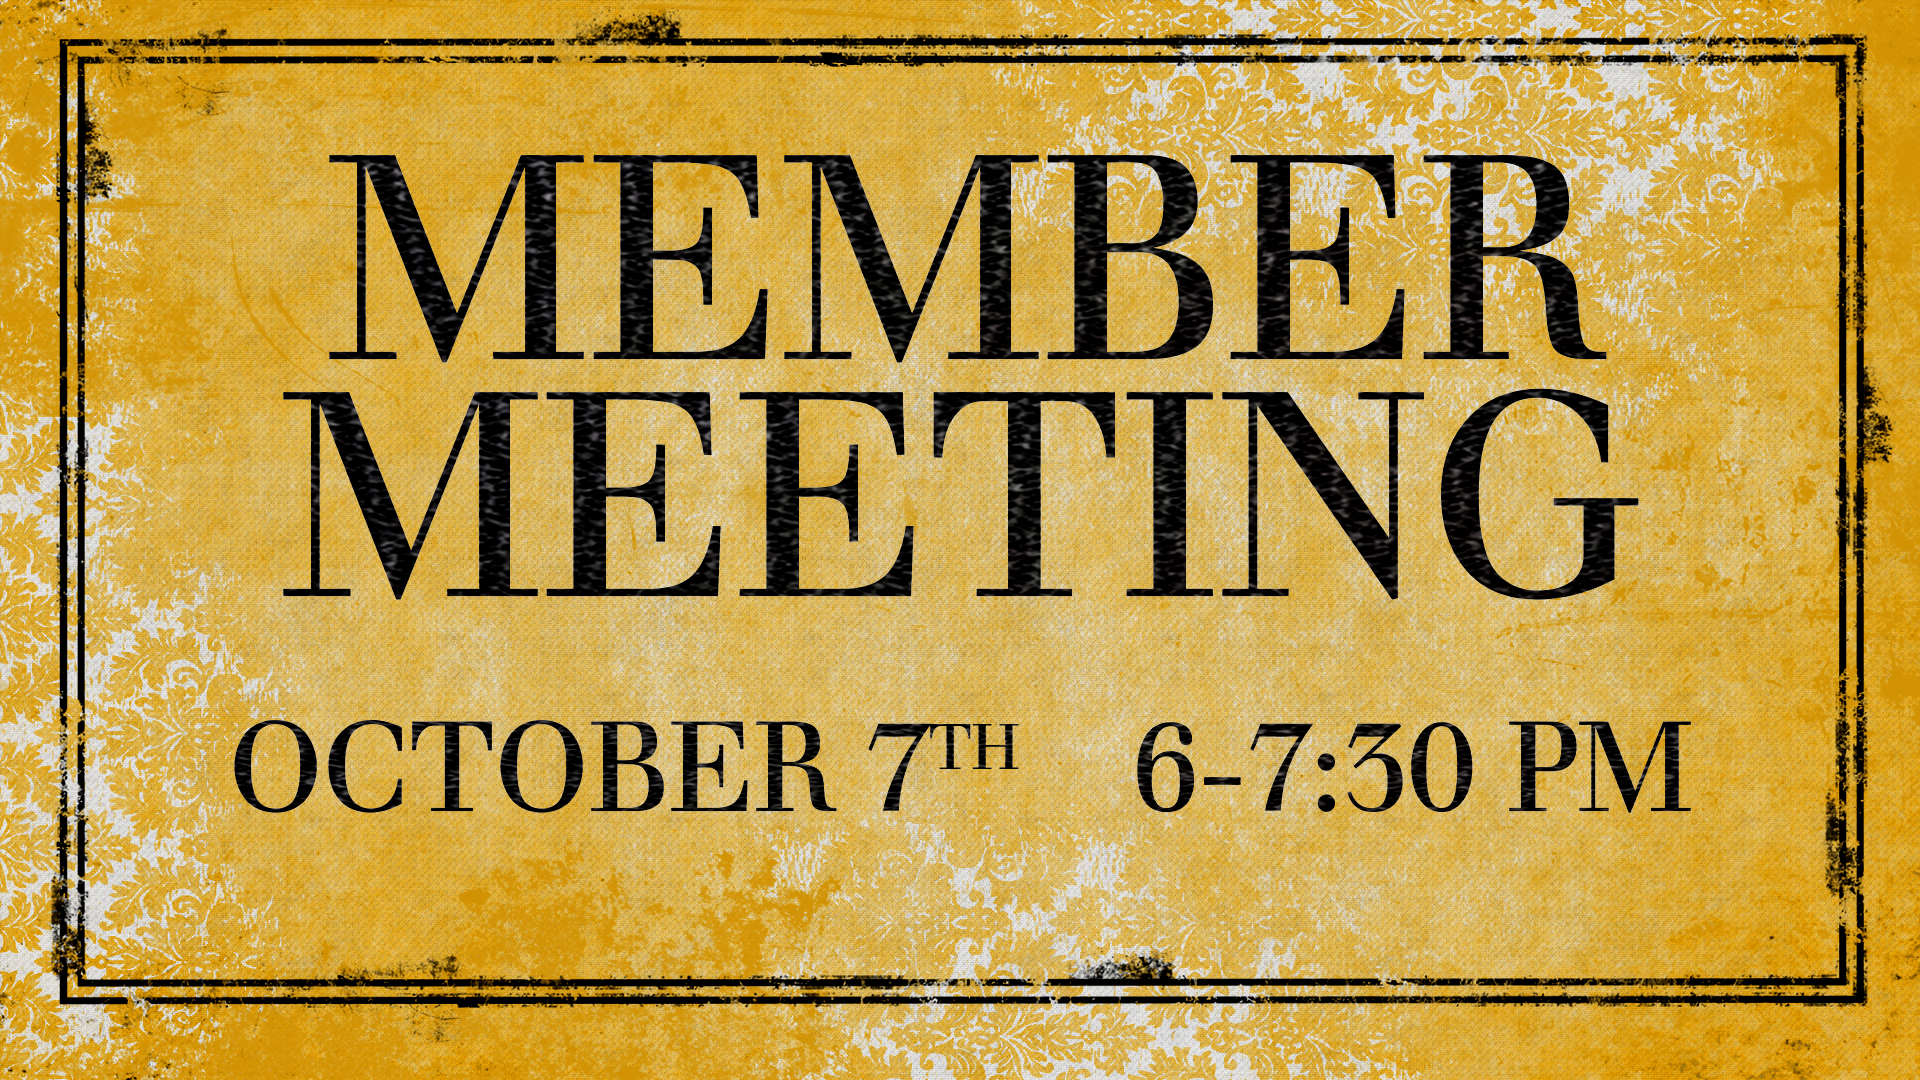 Member Meeting October 7